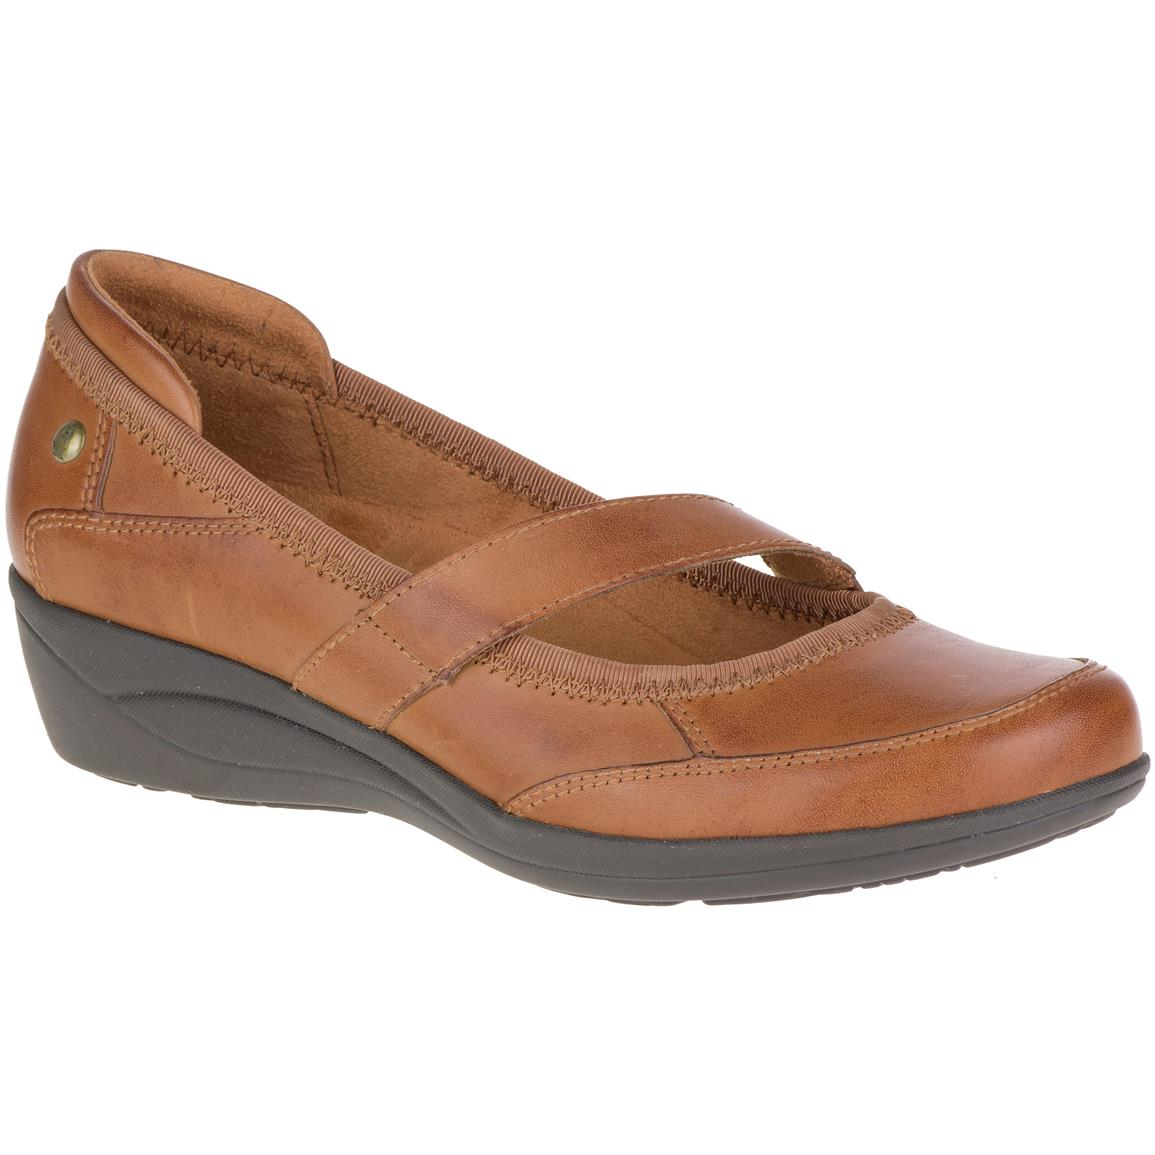 Hush Puppies Women's Velma Oleena Casual Shoes, Tan Leather